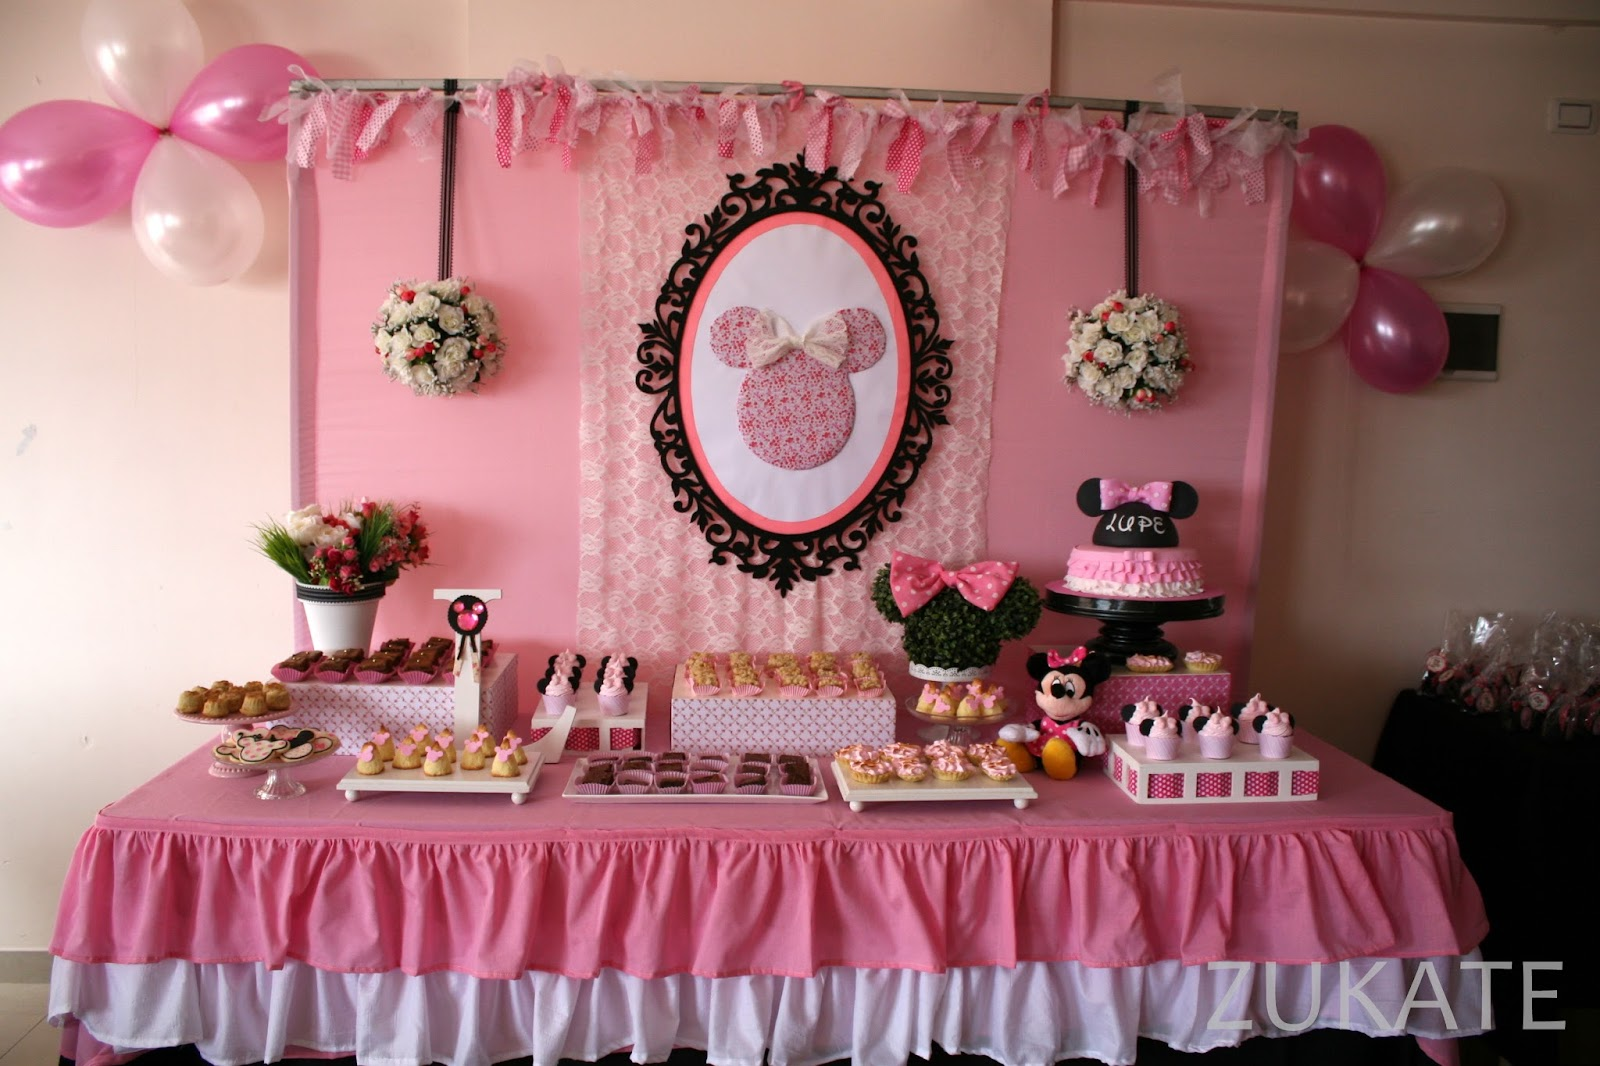 Decoracion Minnie Fucsia ~ ZUKATE FIESTA DE MINNIE MOUSE PARA LUPE